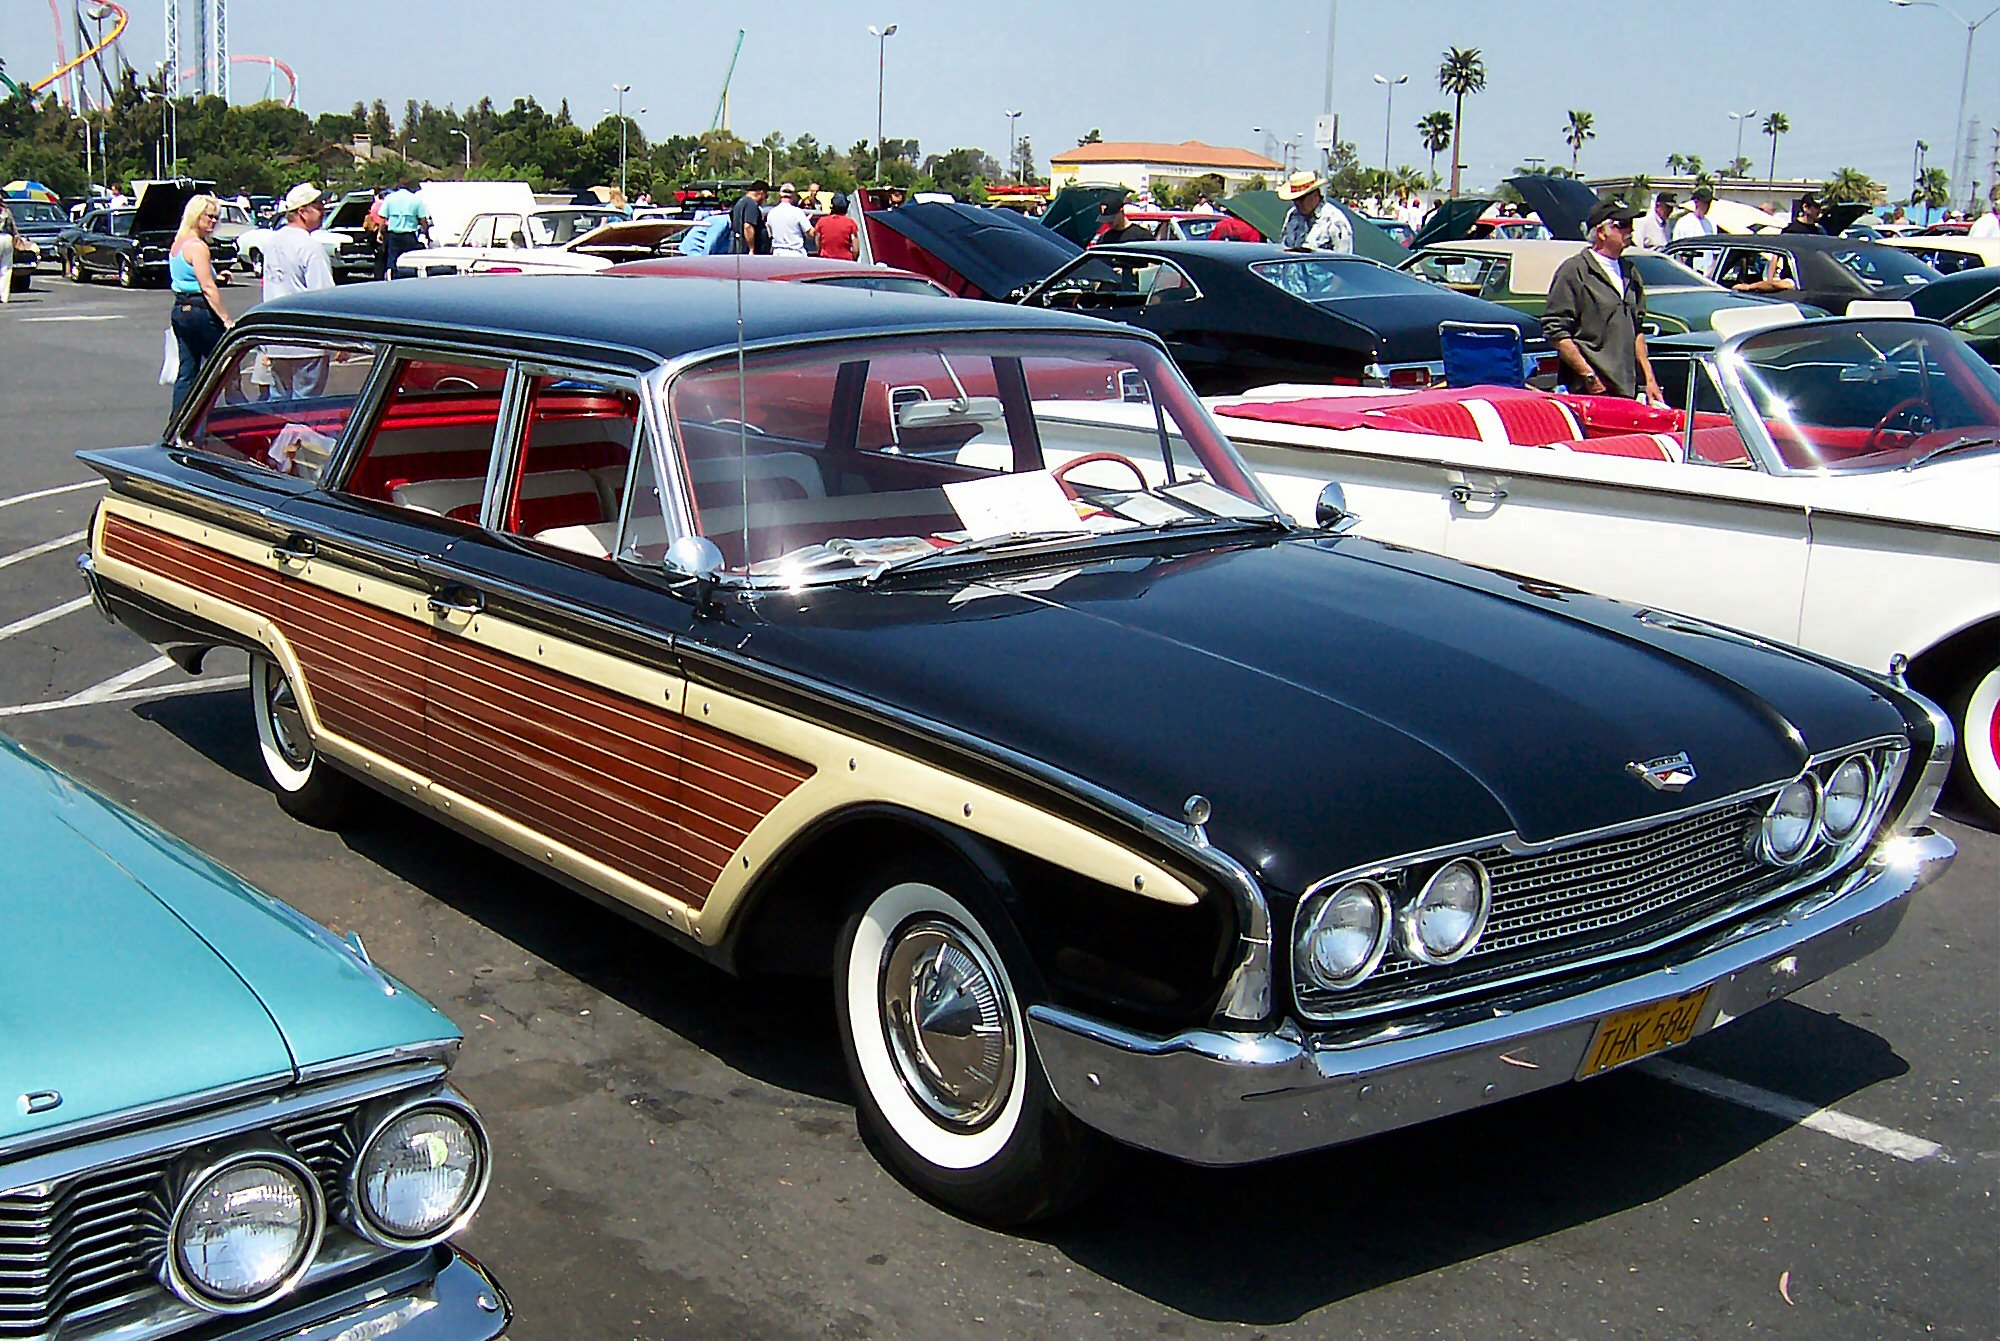 File:1960 Ford Country Squire.jpg - Wikipedia